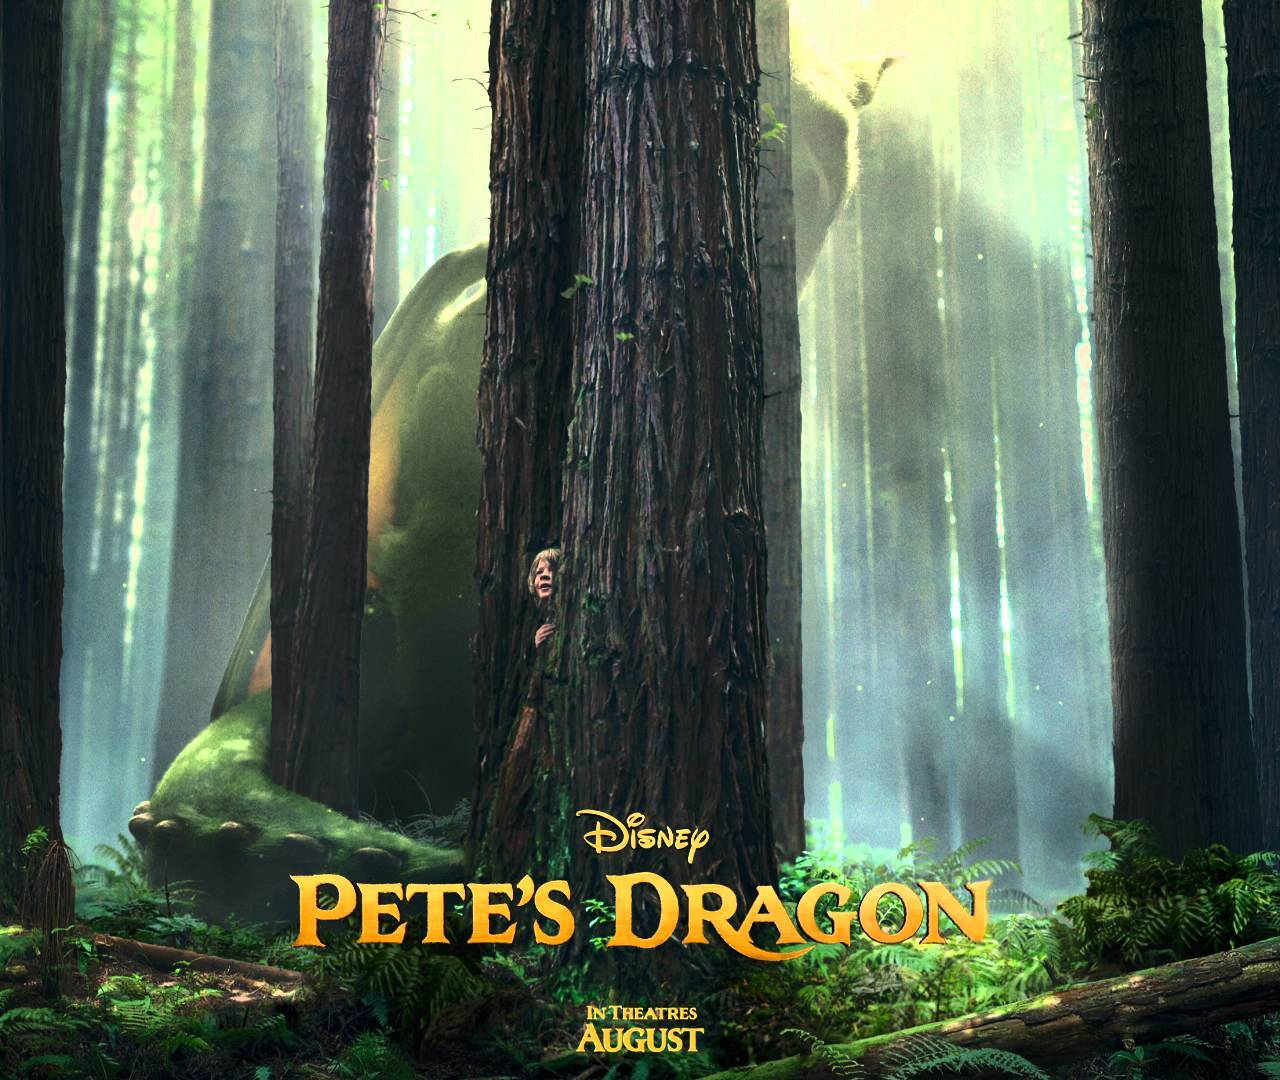 Pete's Dragon: The Furry Friend Who Will Warm Your Heart